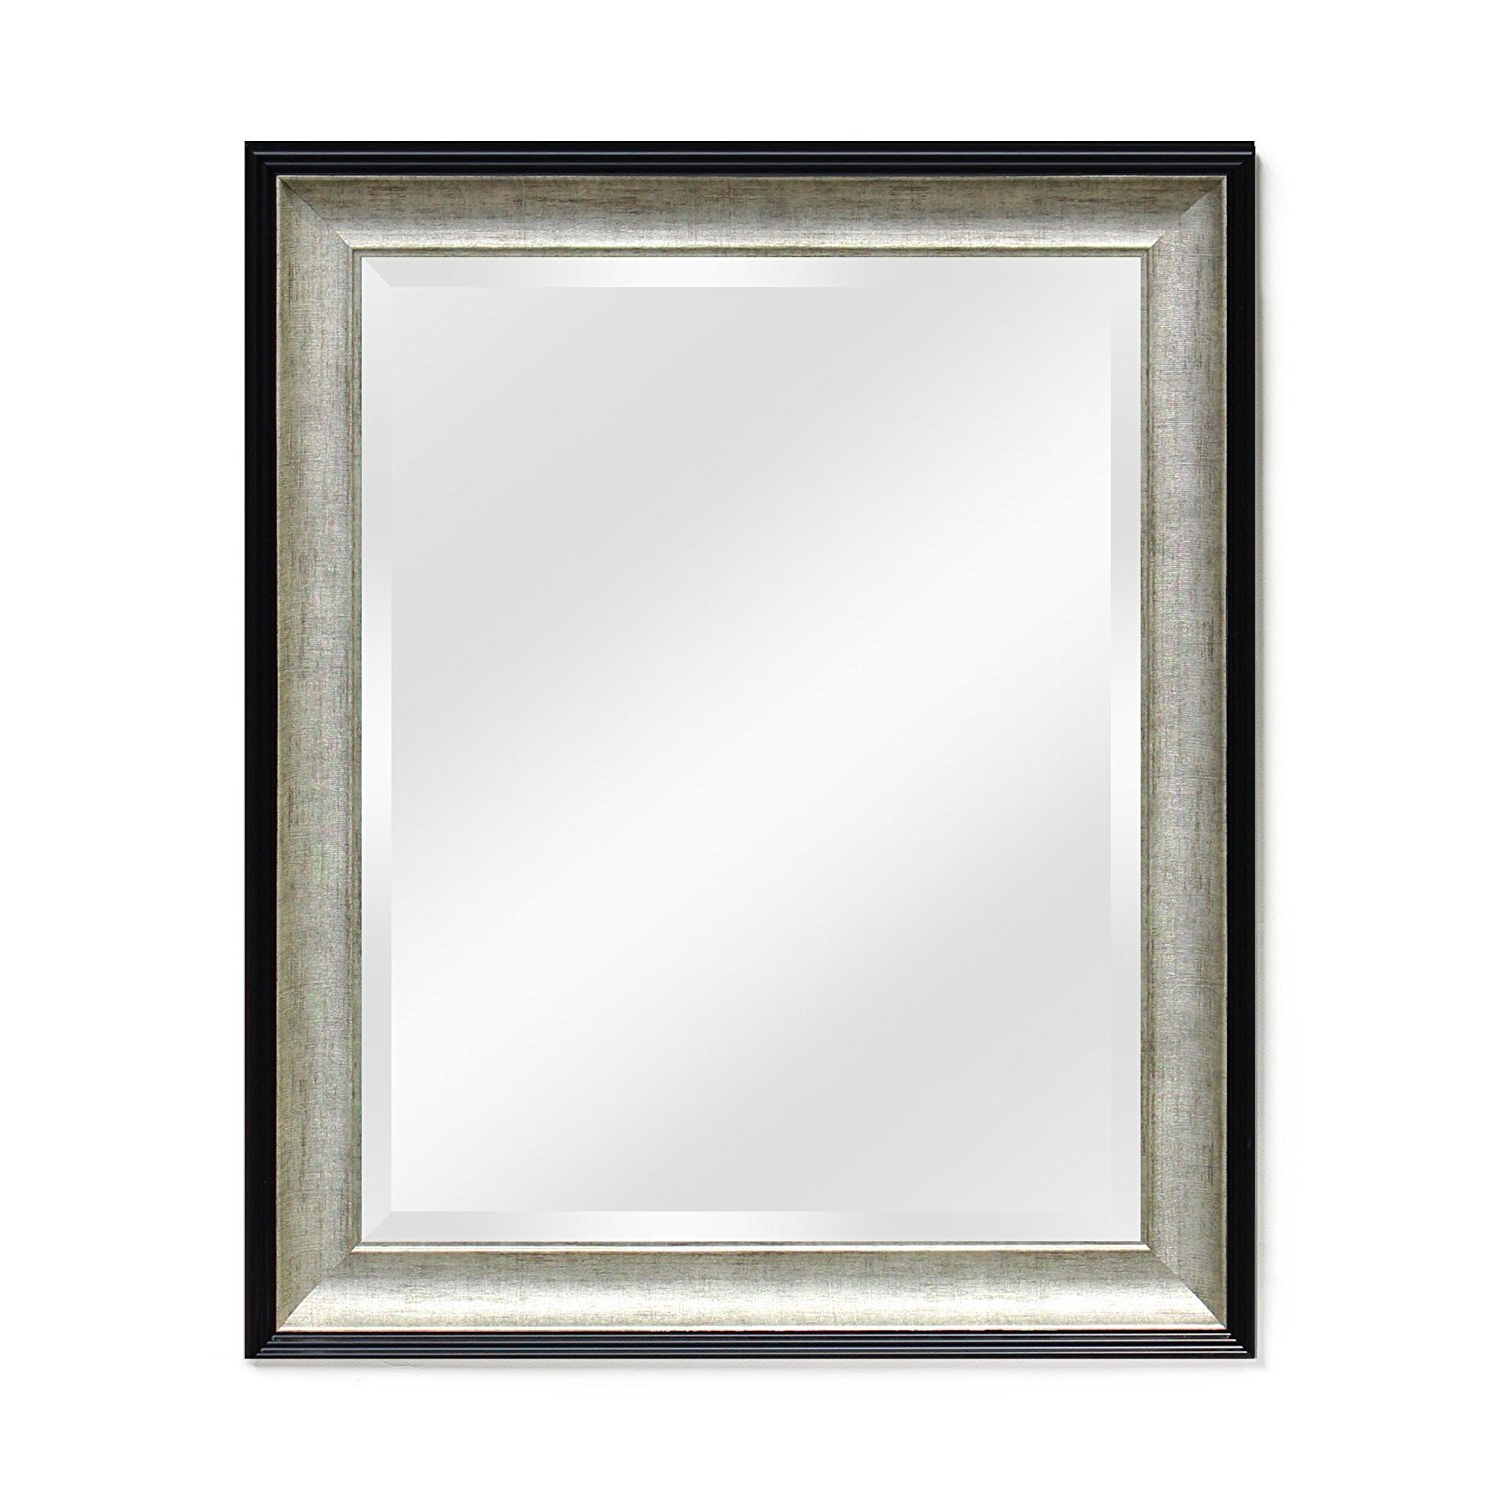 Recent Wall Mirror – For Entryway Or Bathroom Wall Mounted Black Mirrors Ecohome (26x32, Black/silver) With Entry Wall Mirrors (View 5 of 20)